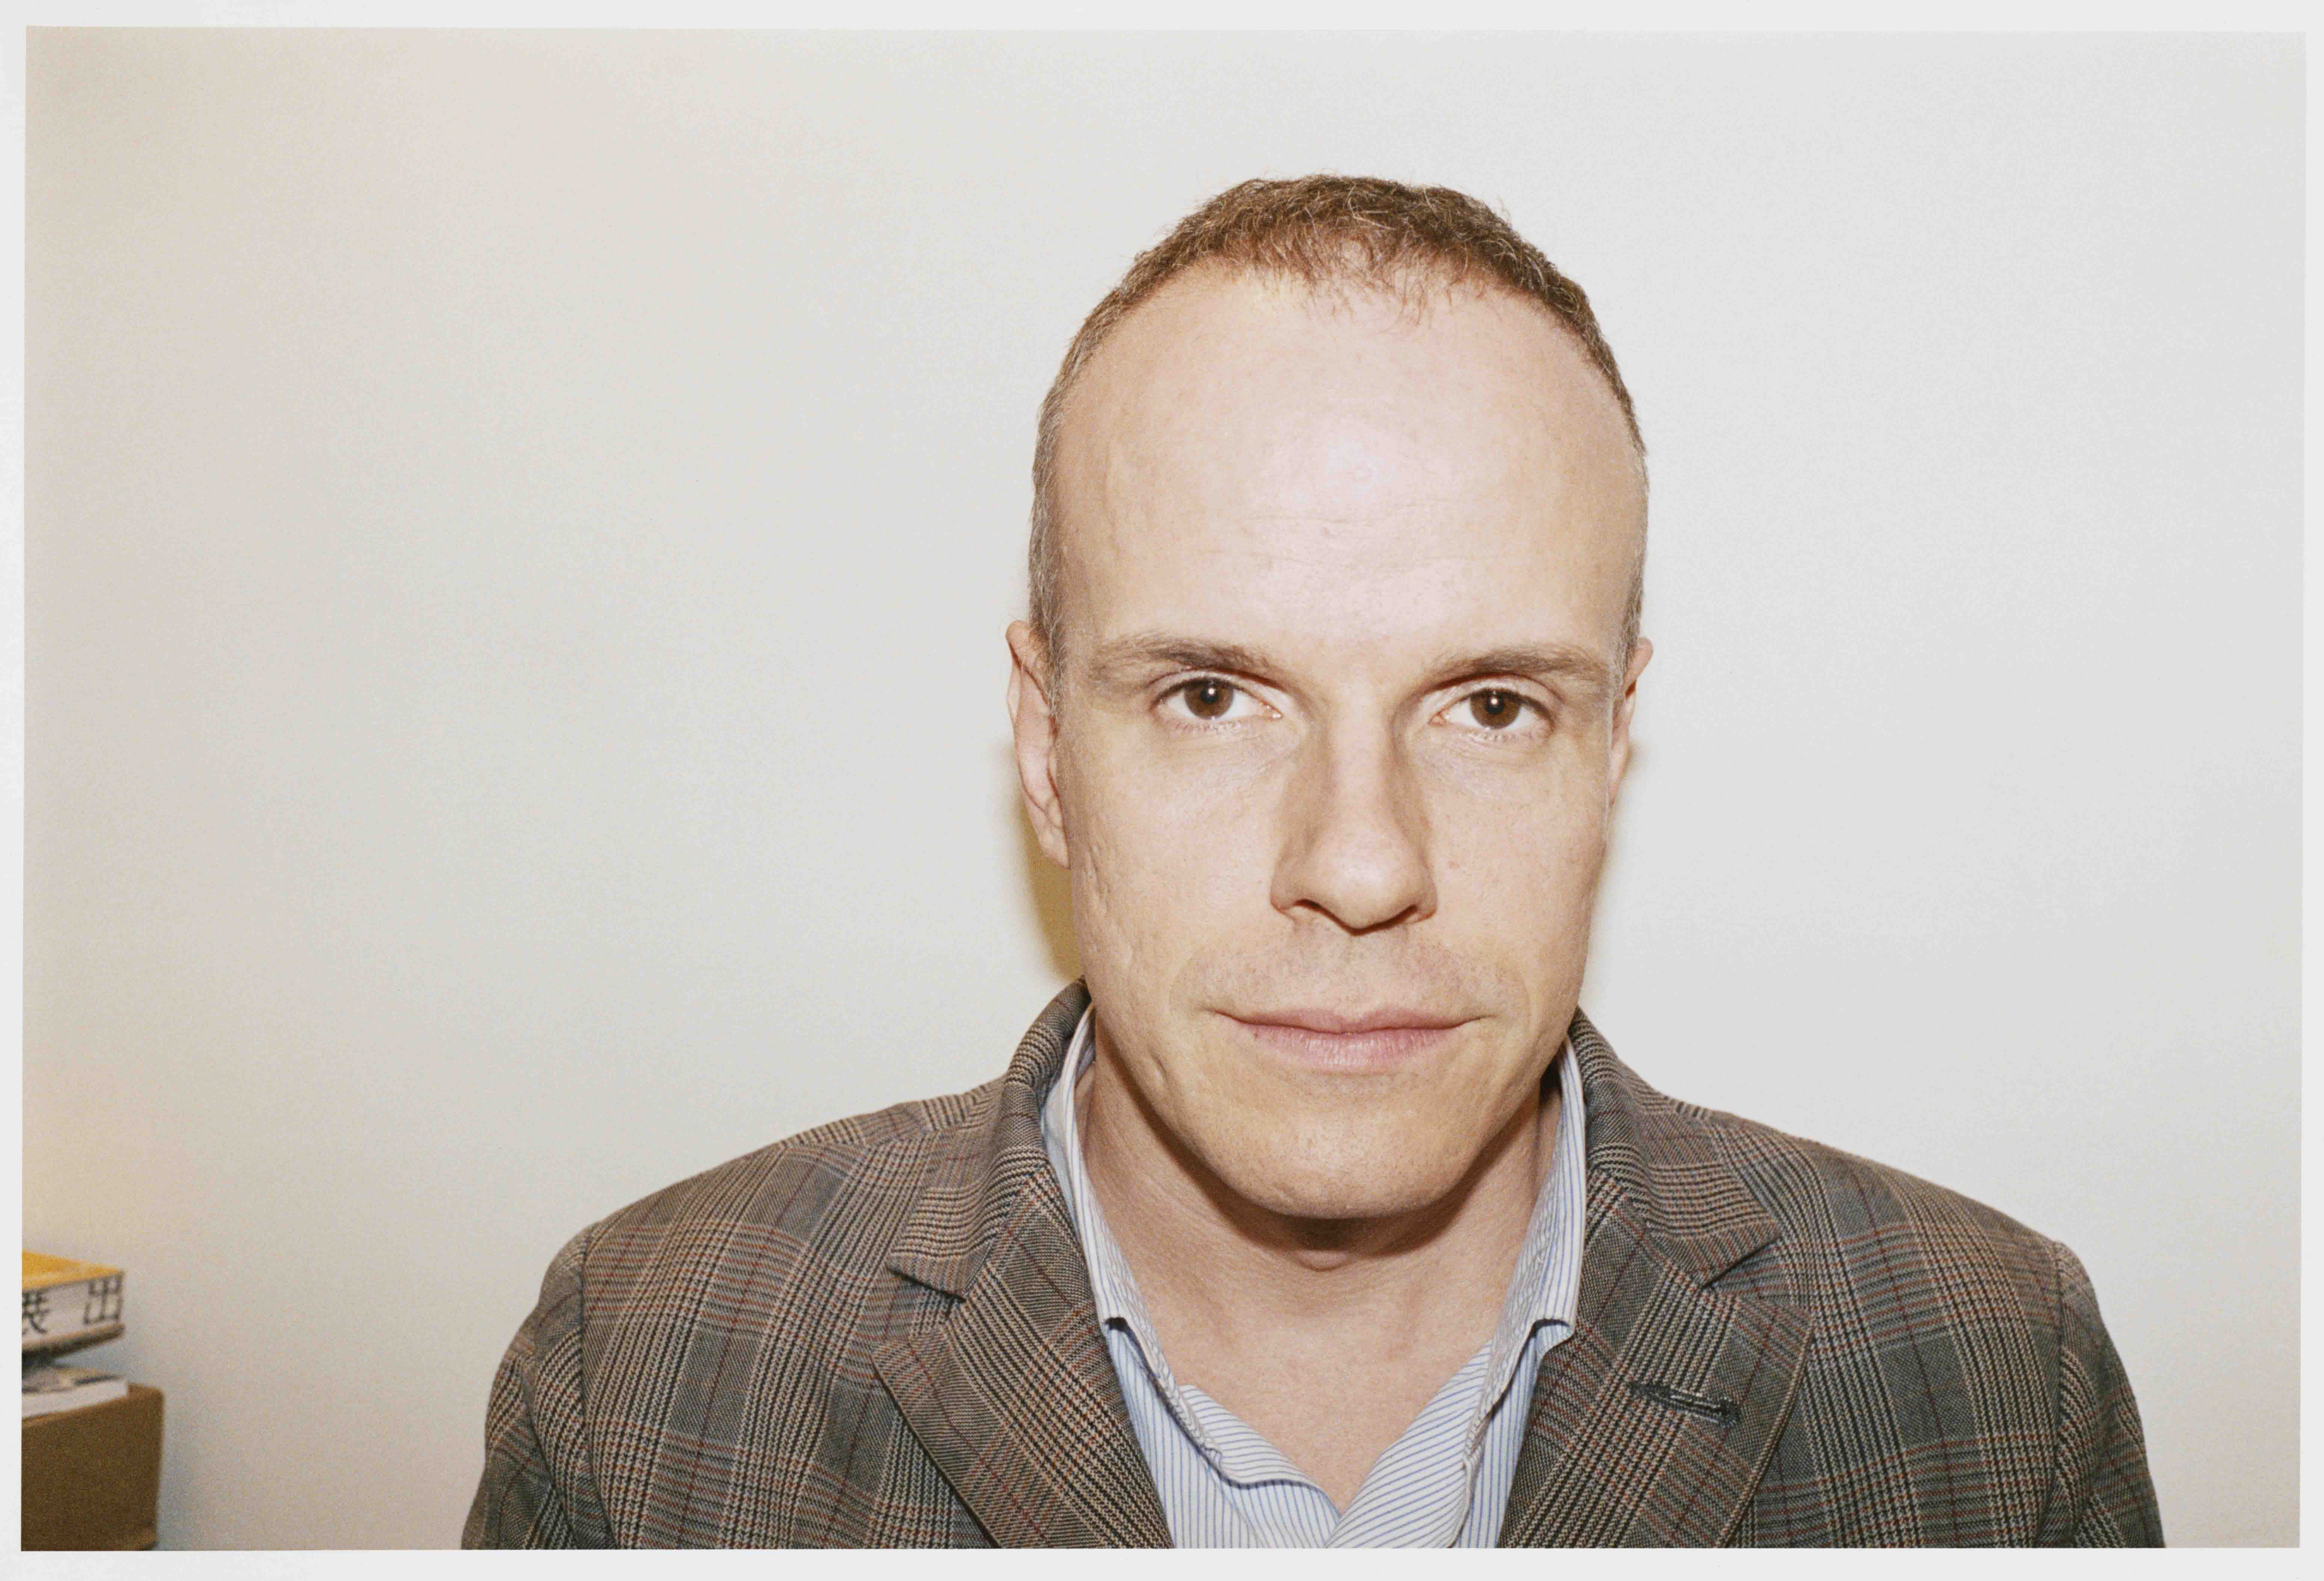 The curator and museum director Hans Ulrich Obrist. Photo: Juergen Teller.